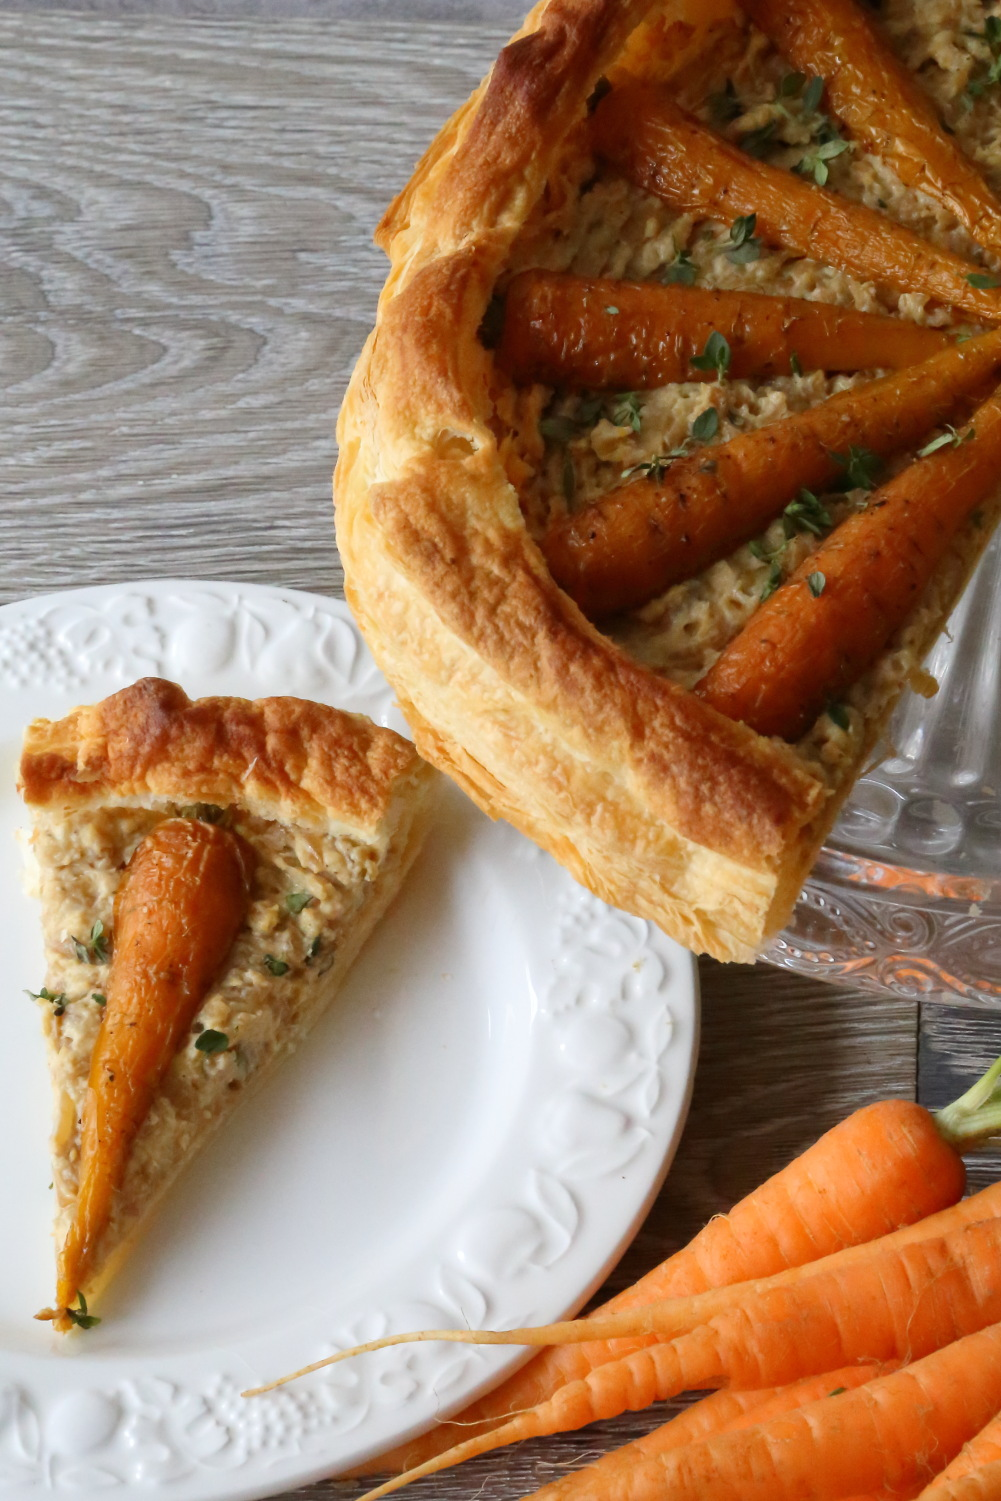 A slice of carrot and hummus tart to illustrate a simple vegan quiche recipe.